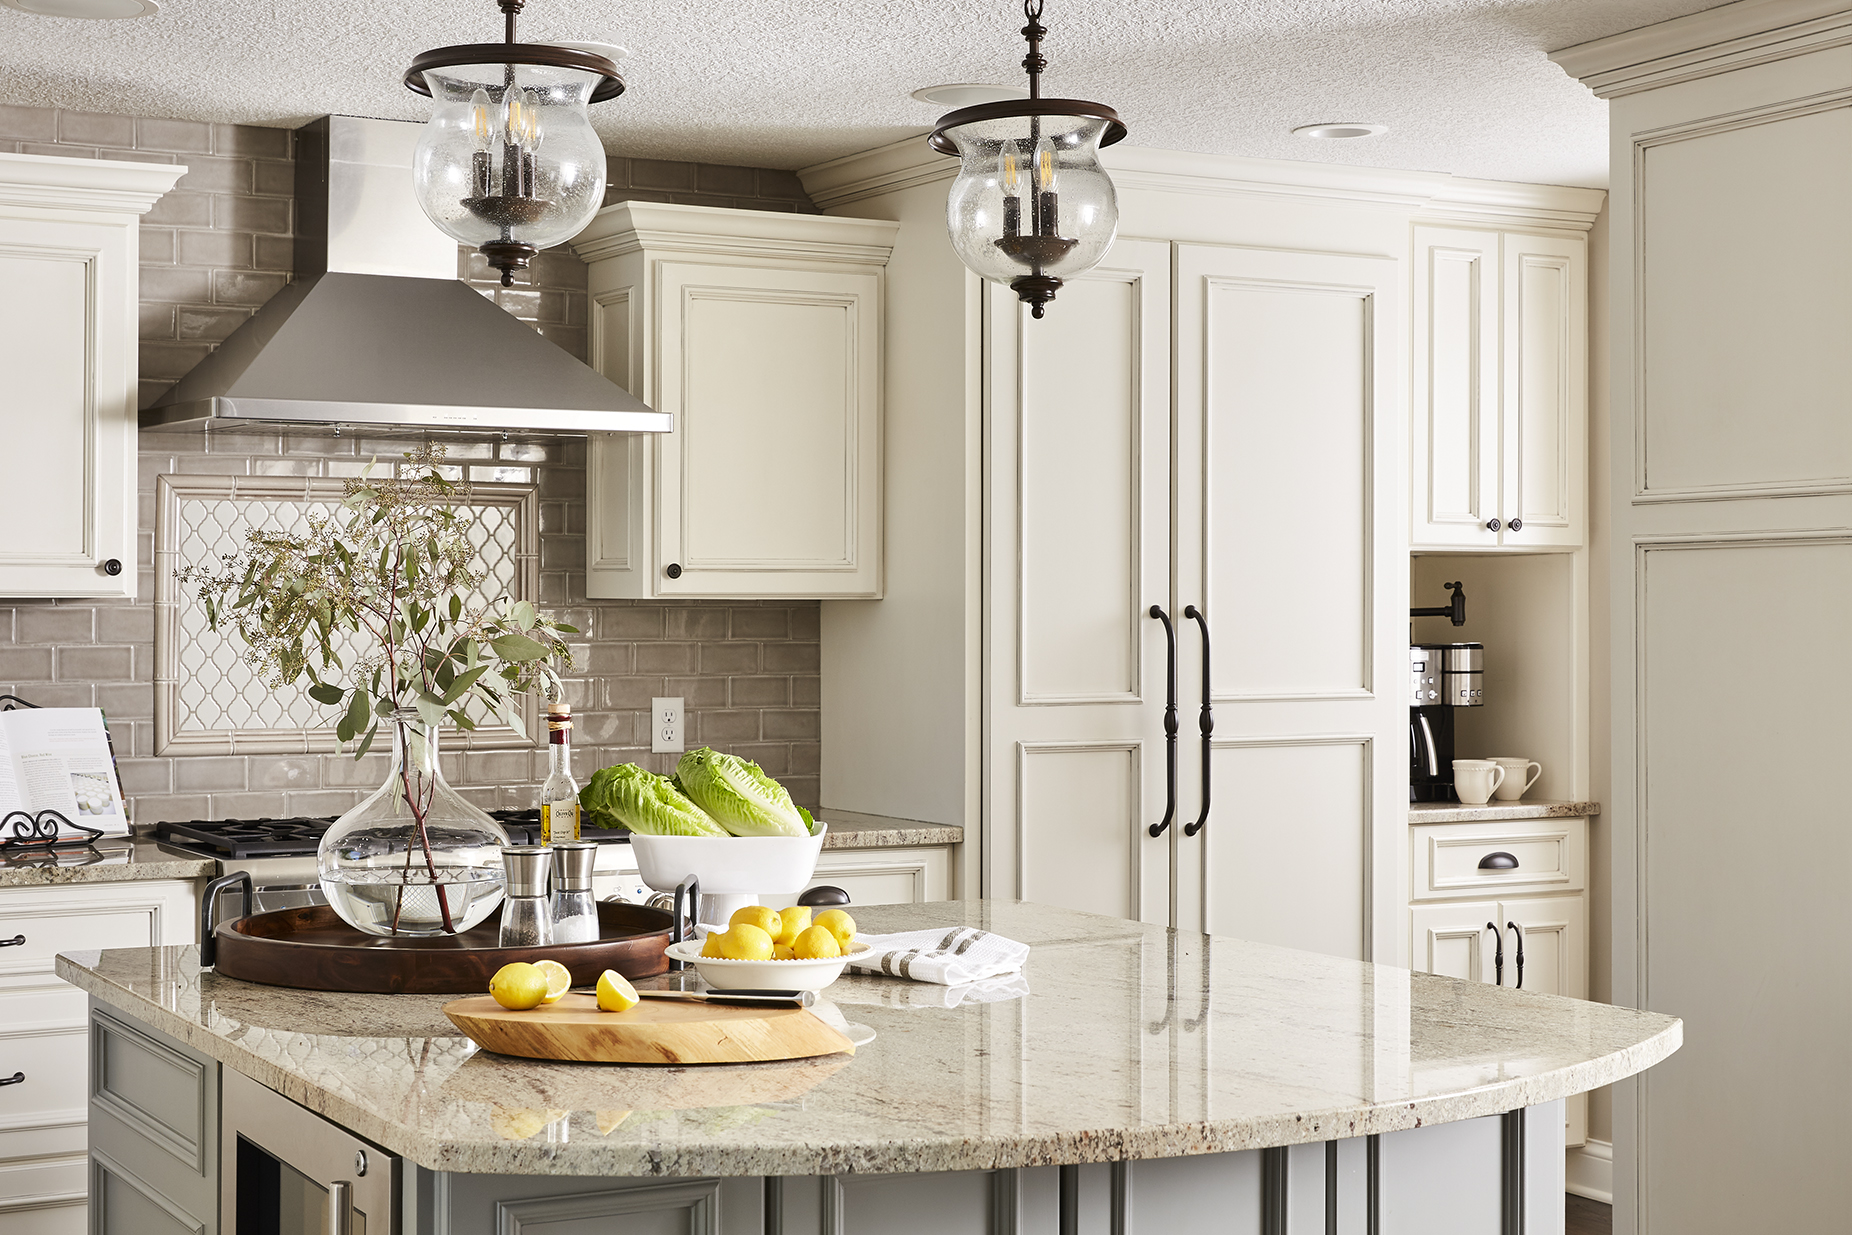 Granite countertops provide a classic element to this kitchen, giving ample space for cooking and entertaining.